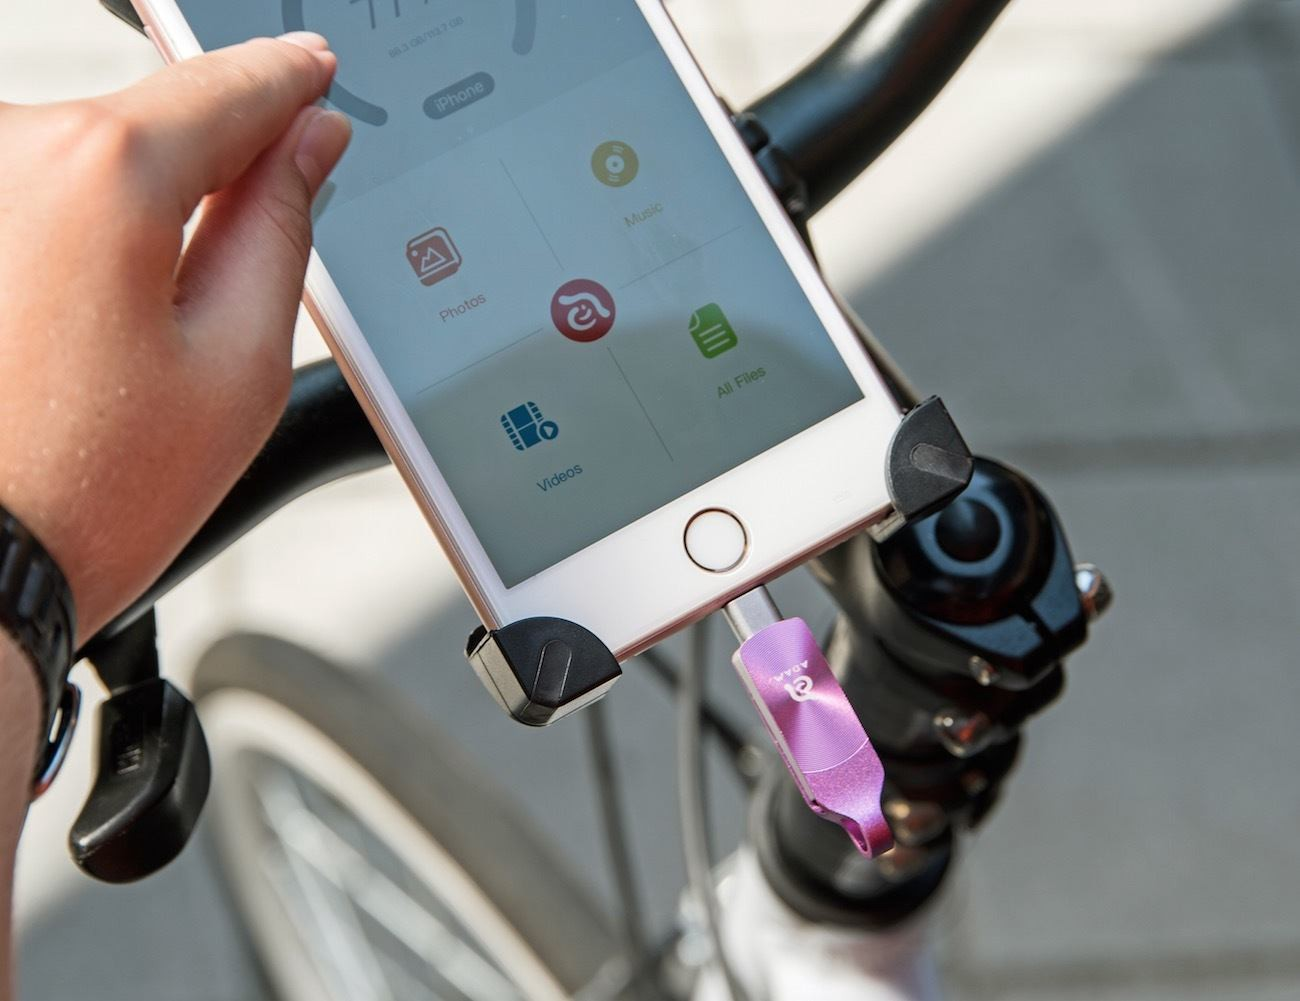 10 Gadgets to Expand Your iPhone Storage